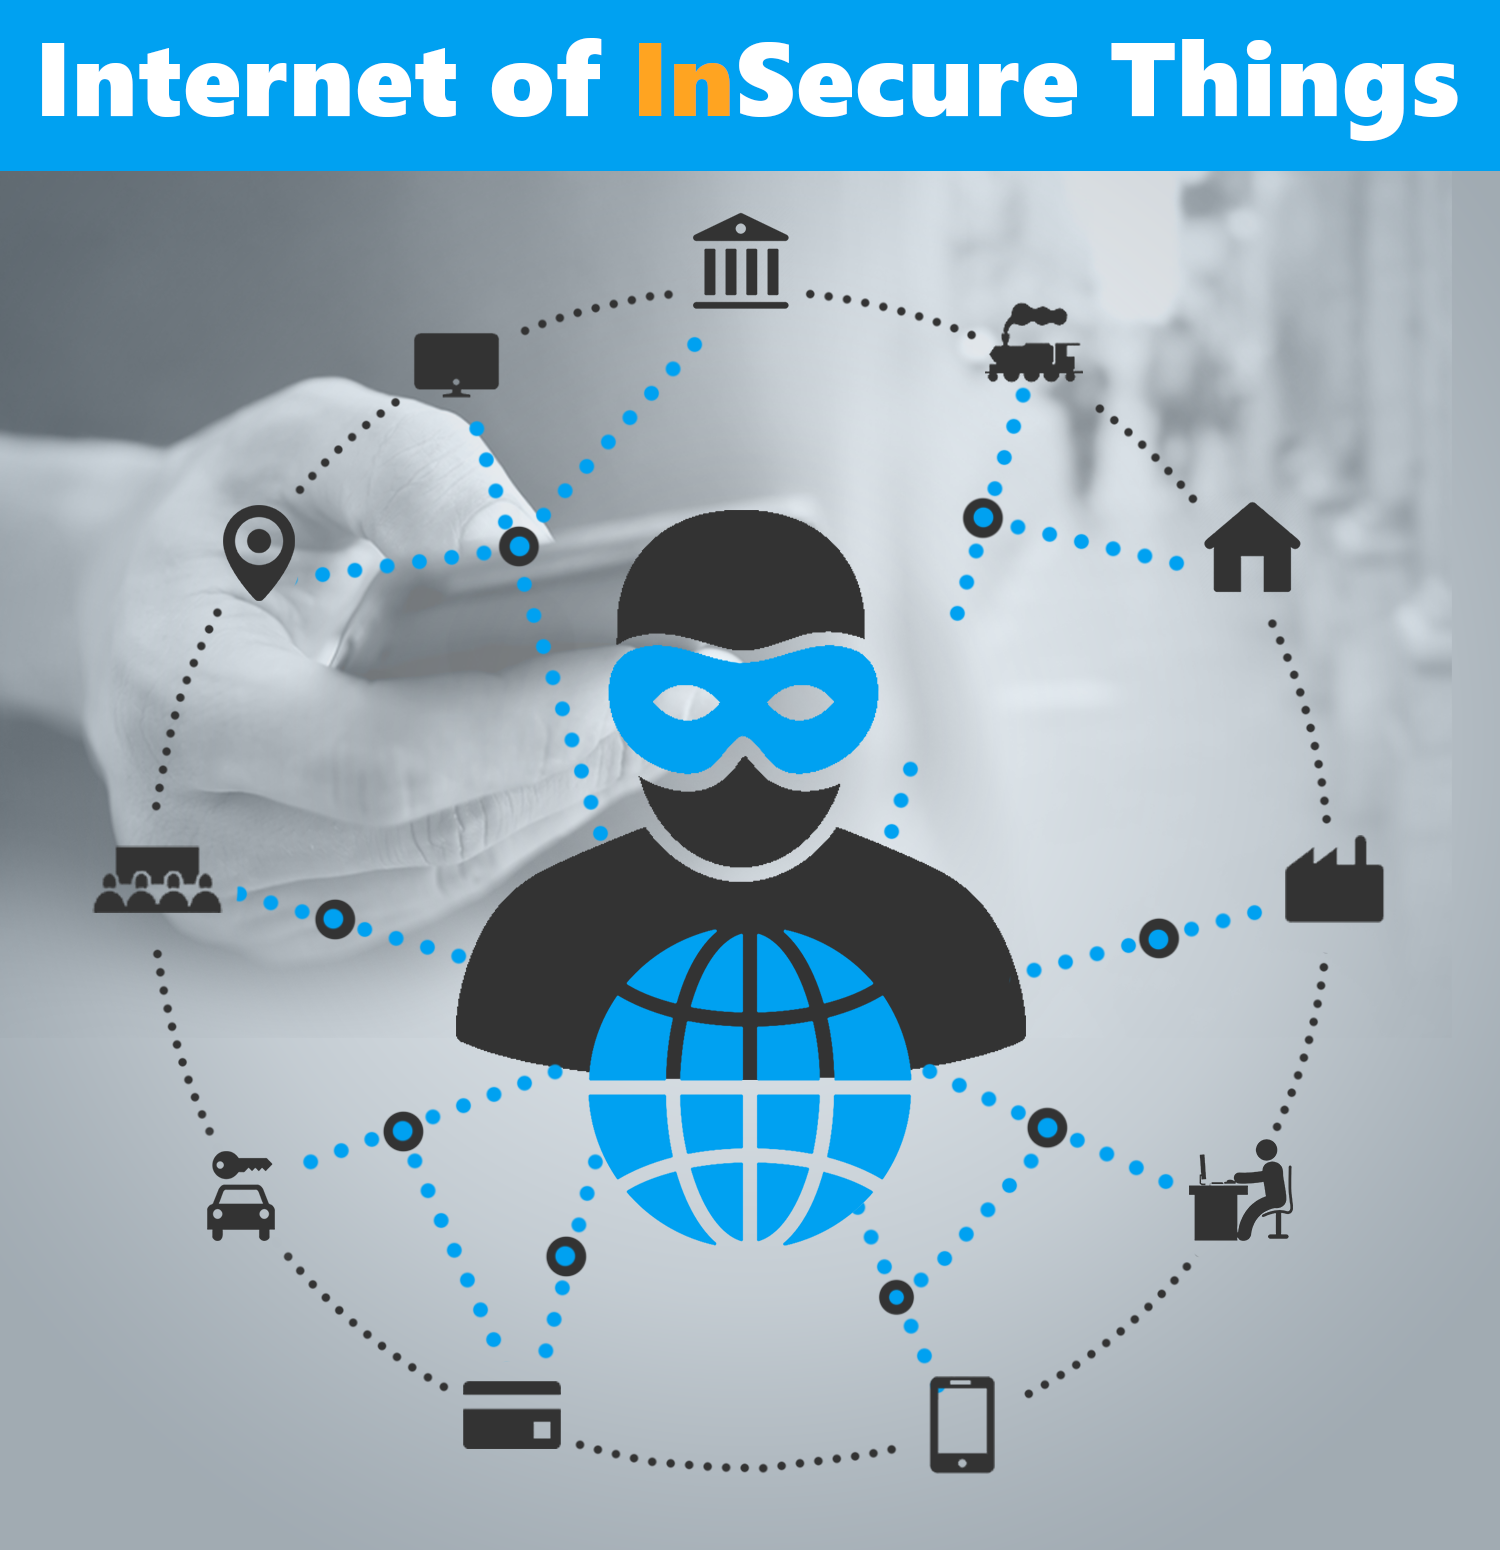 Internet of Insecure Things- Adopt Now or Wait? - Info